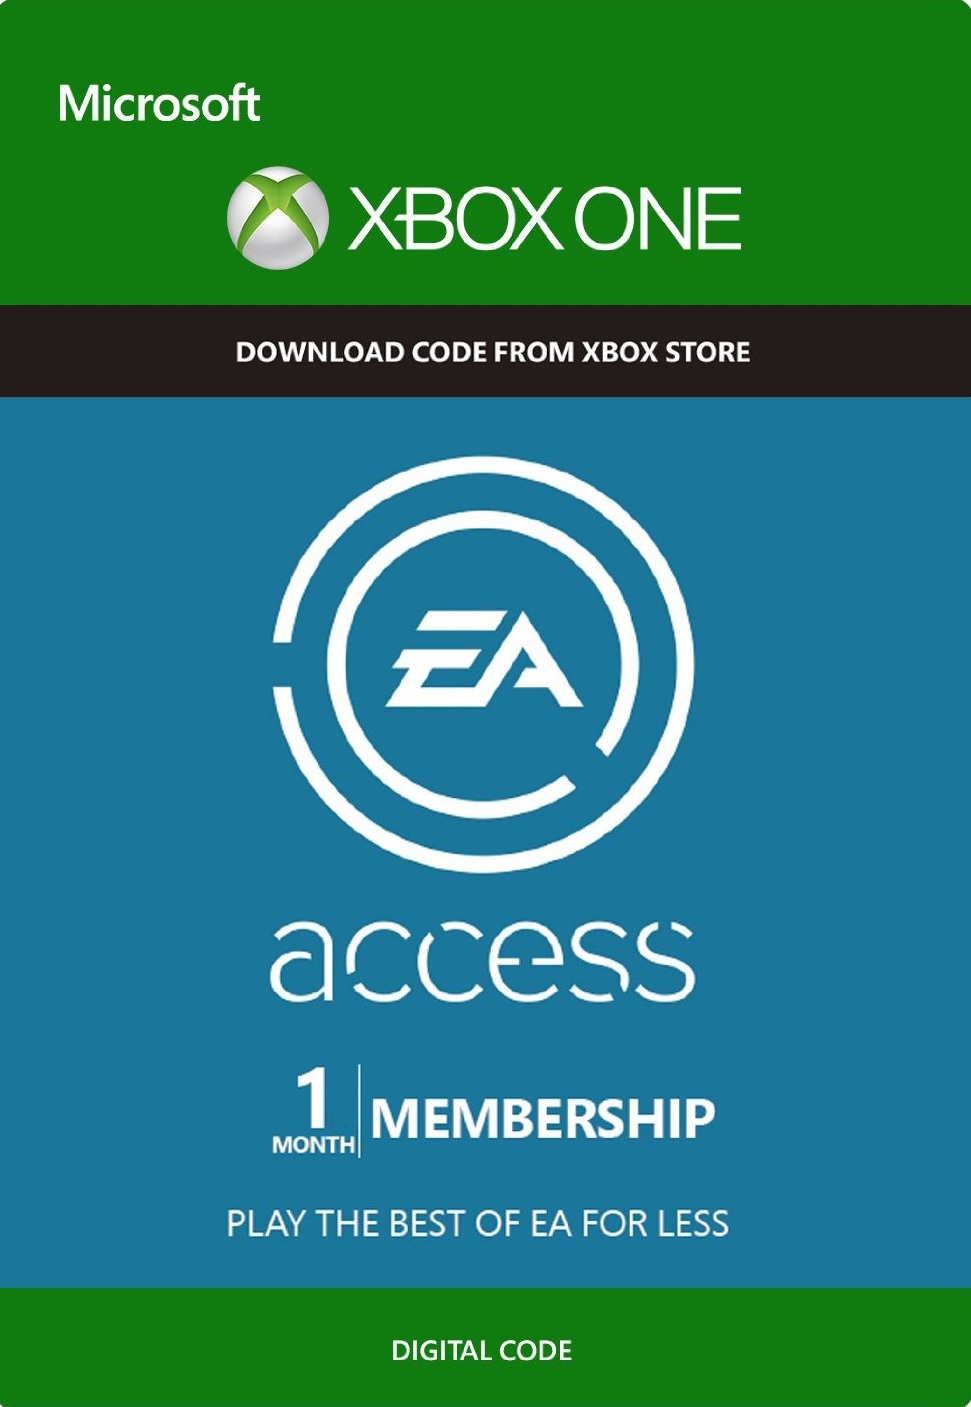 how to use microsoft money to buy xbox live